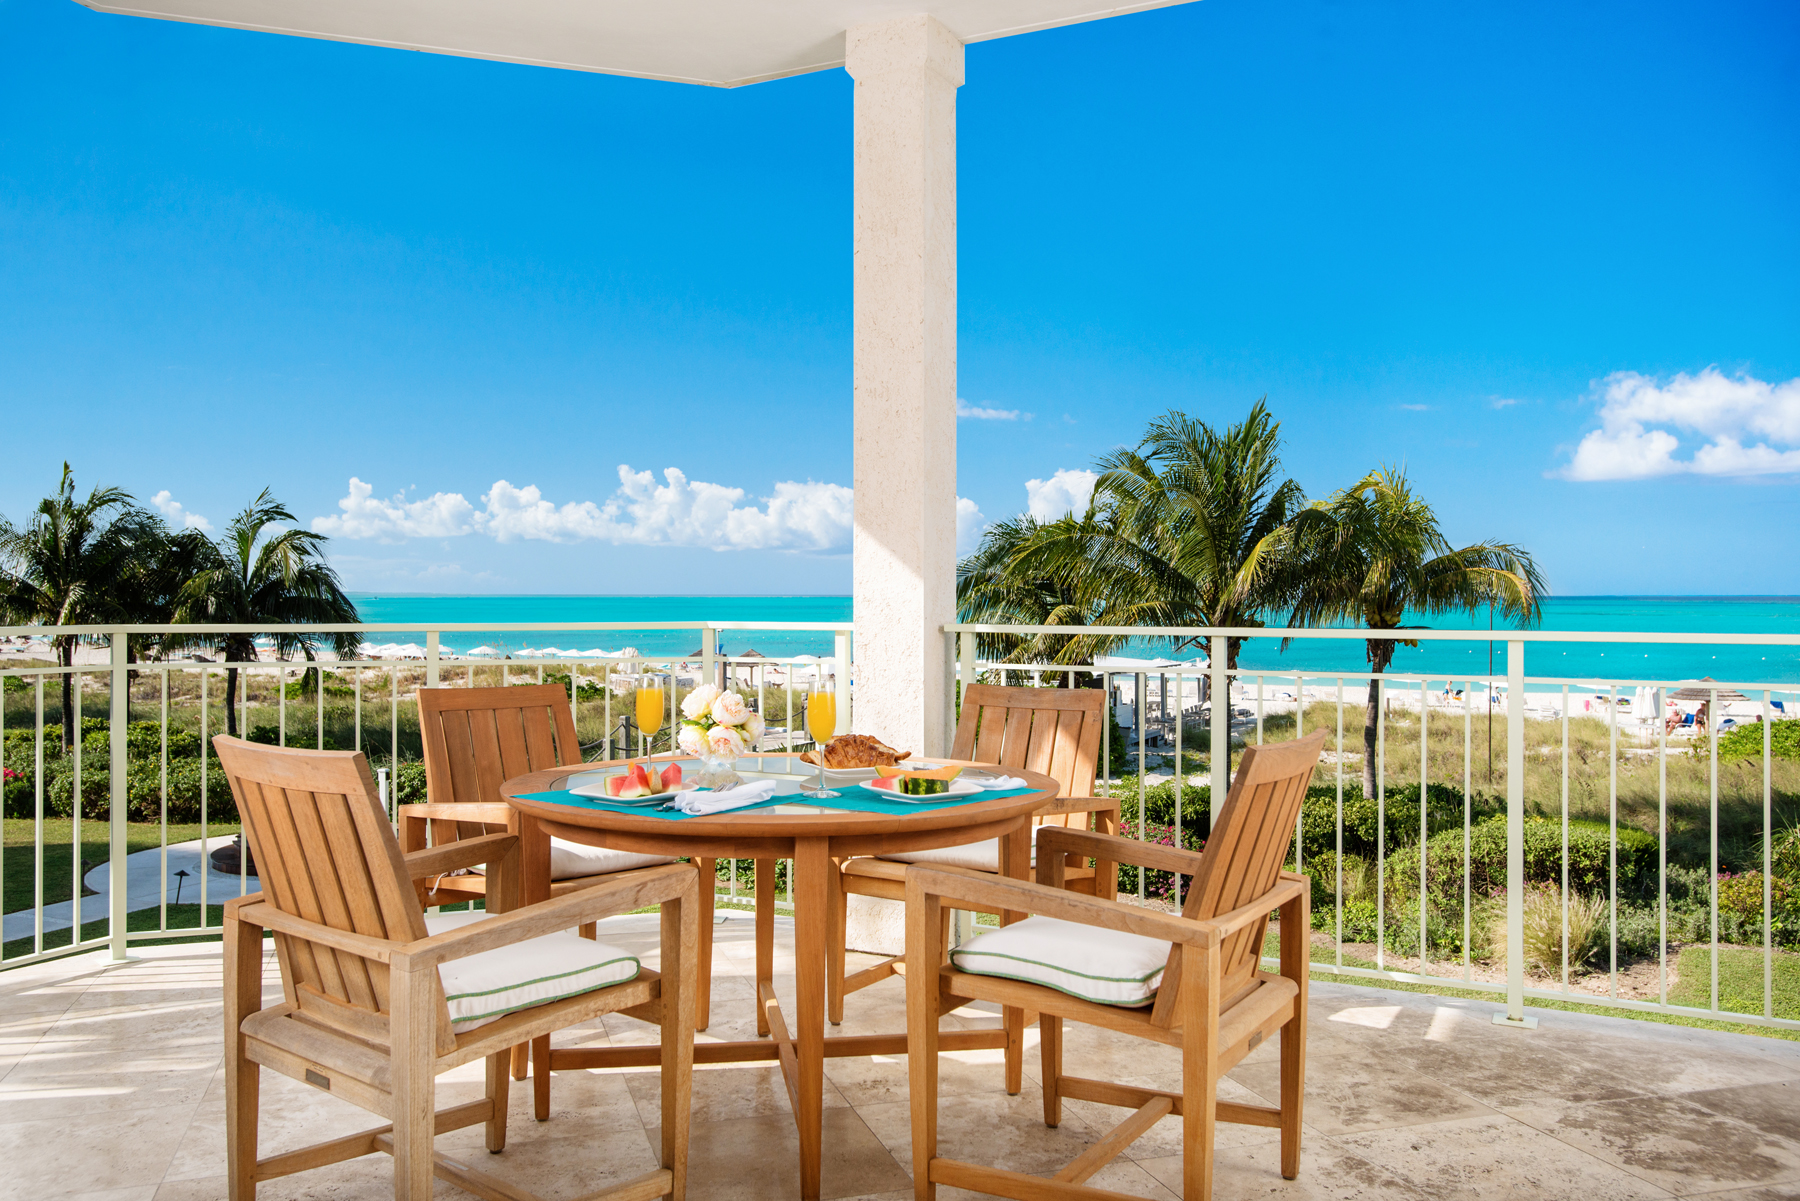 Additional photo for property listing at West Bay Club - Suite 207 West Bay Club, Grace Bay, Providenciales Turks And Caicos Islands